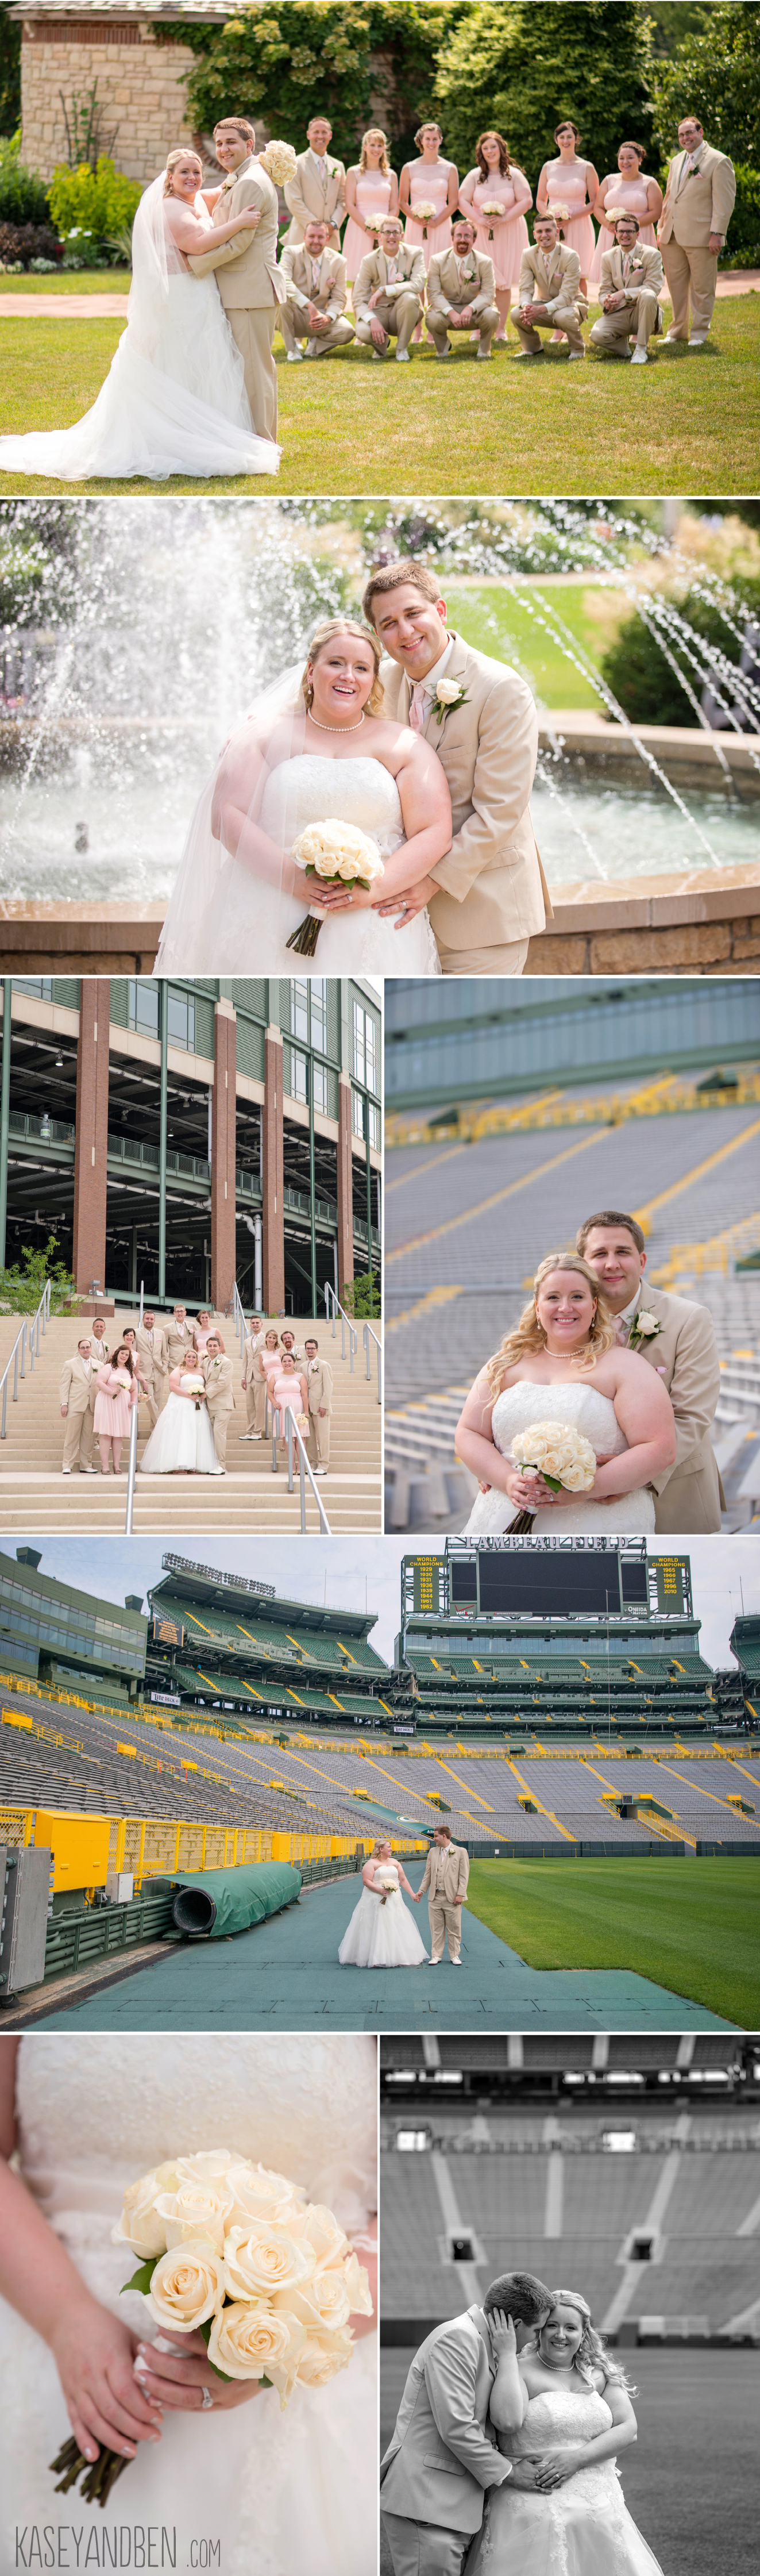 Green-Bay-Botanical-Gardens-Wedding-Lambeau-Field-Photographer-Photography-Bride-summer2